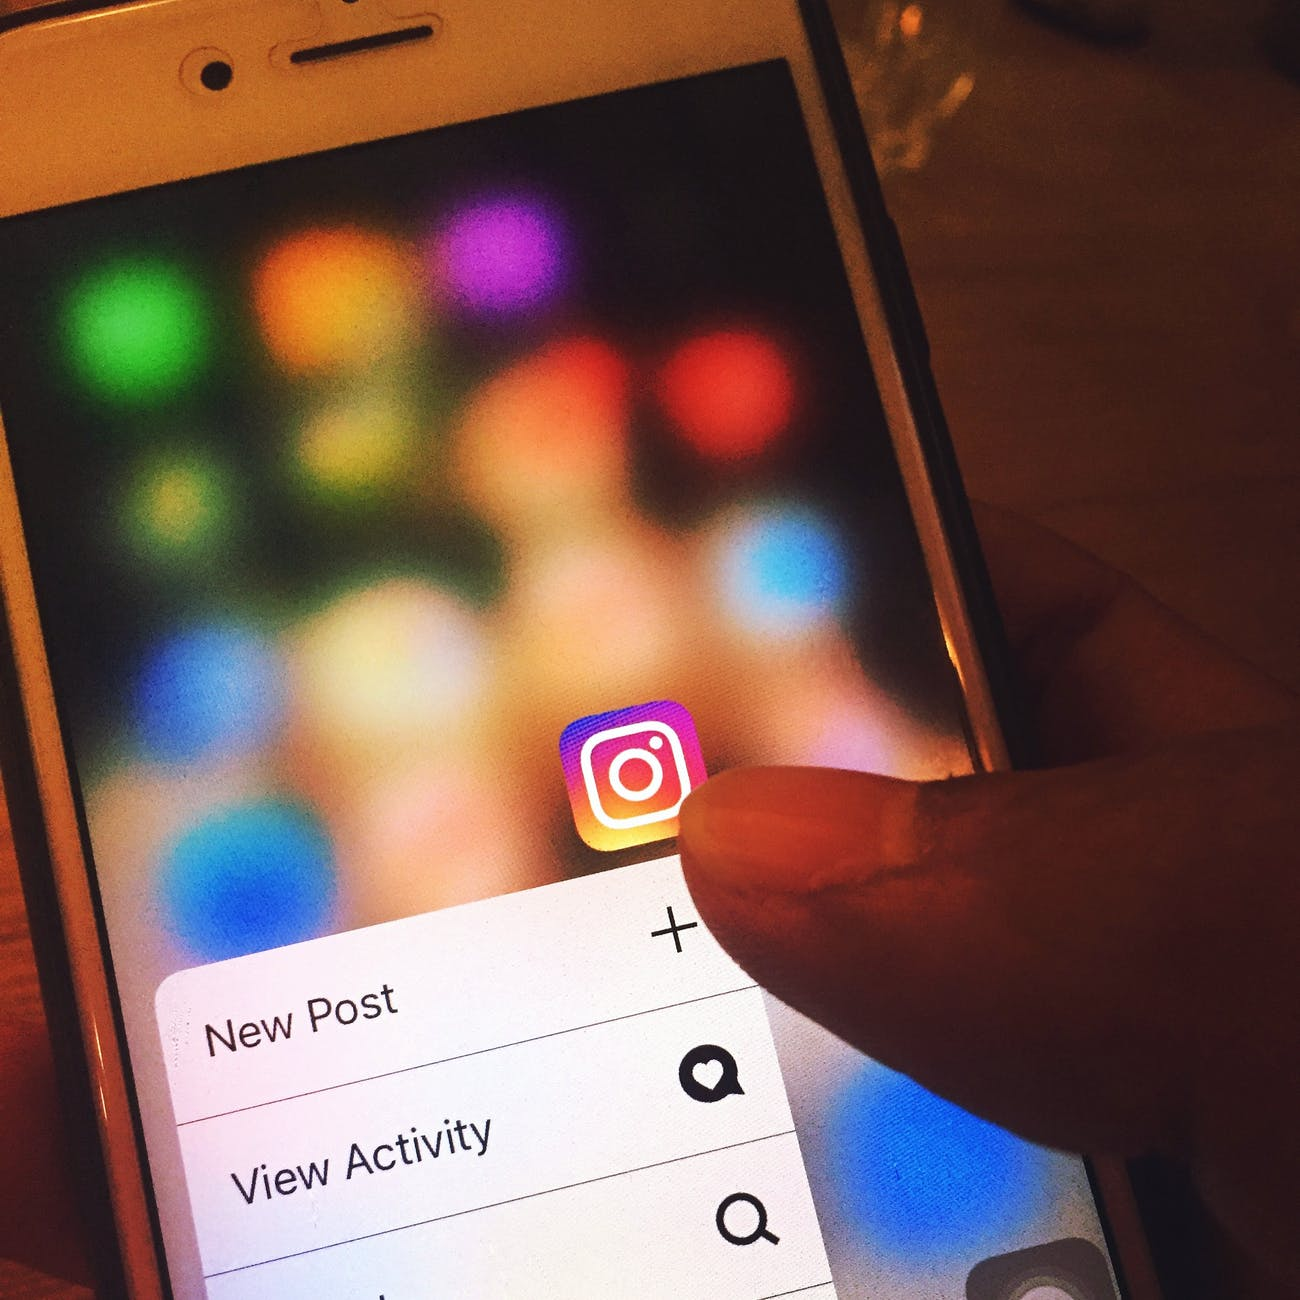 How to publicize on Instagram?